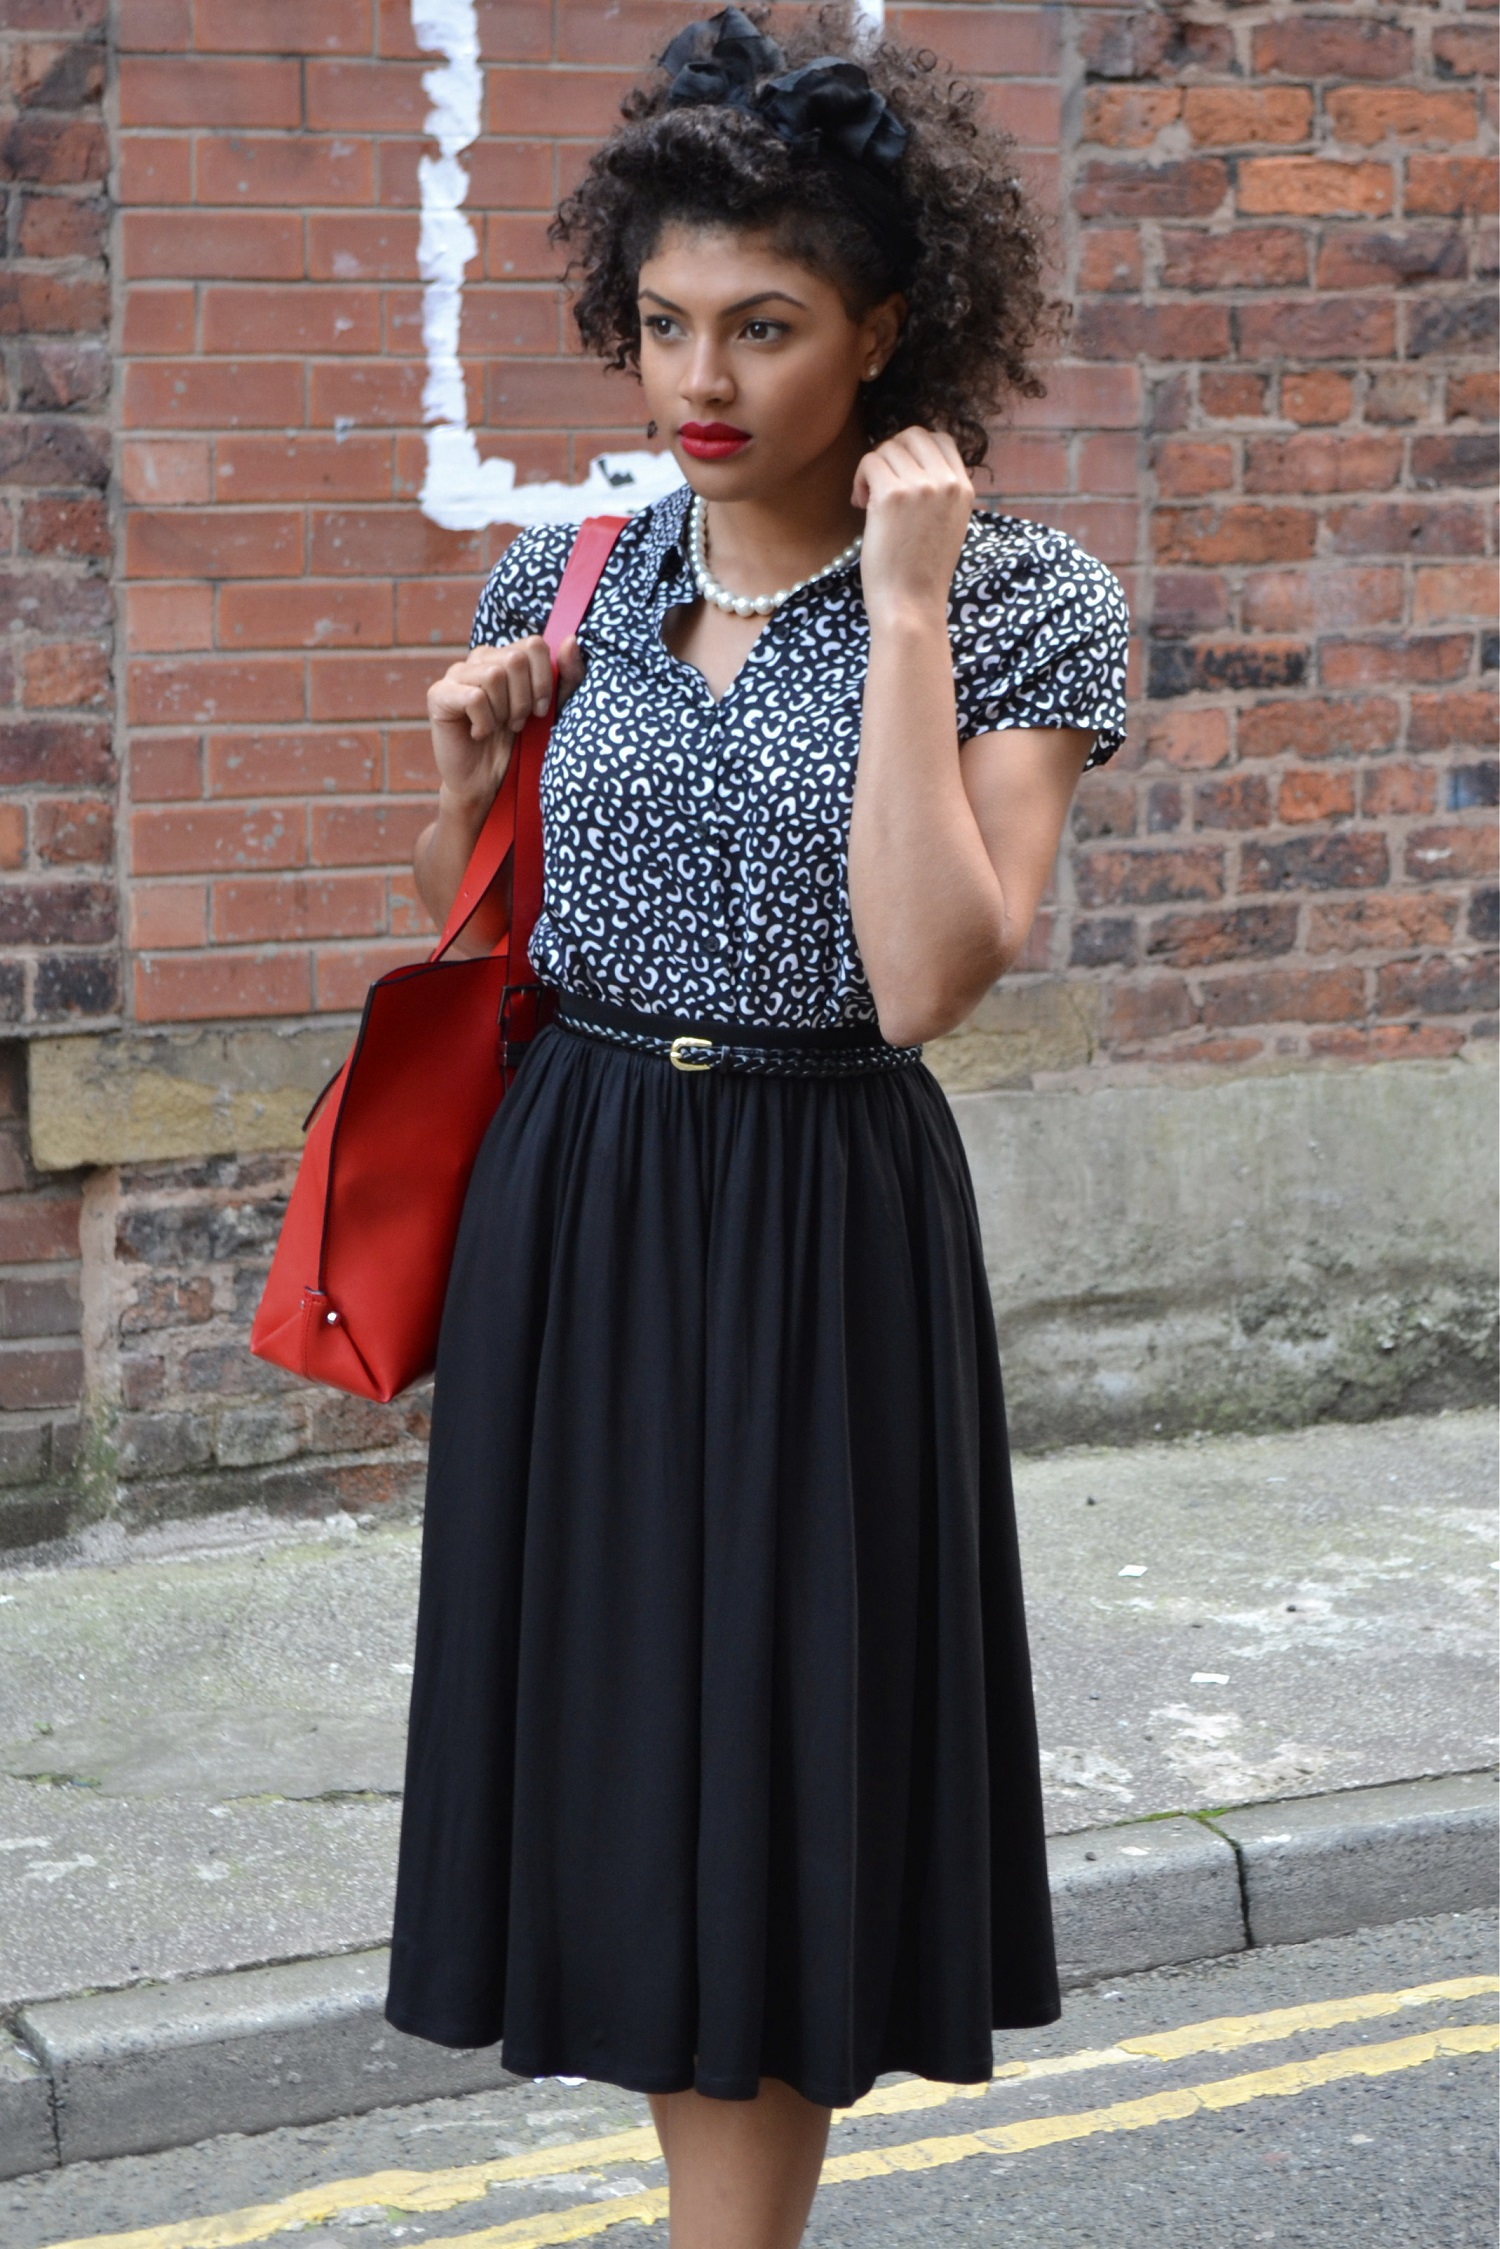 1950's style outftit